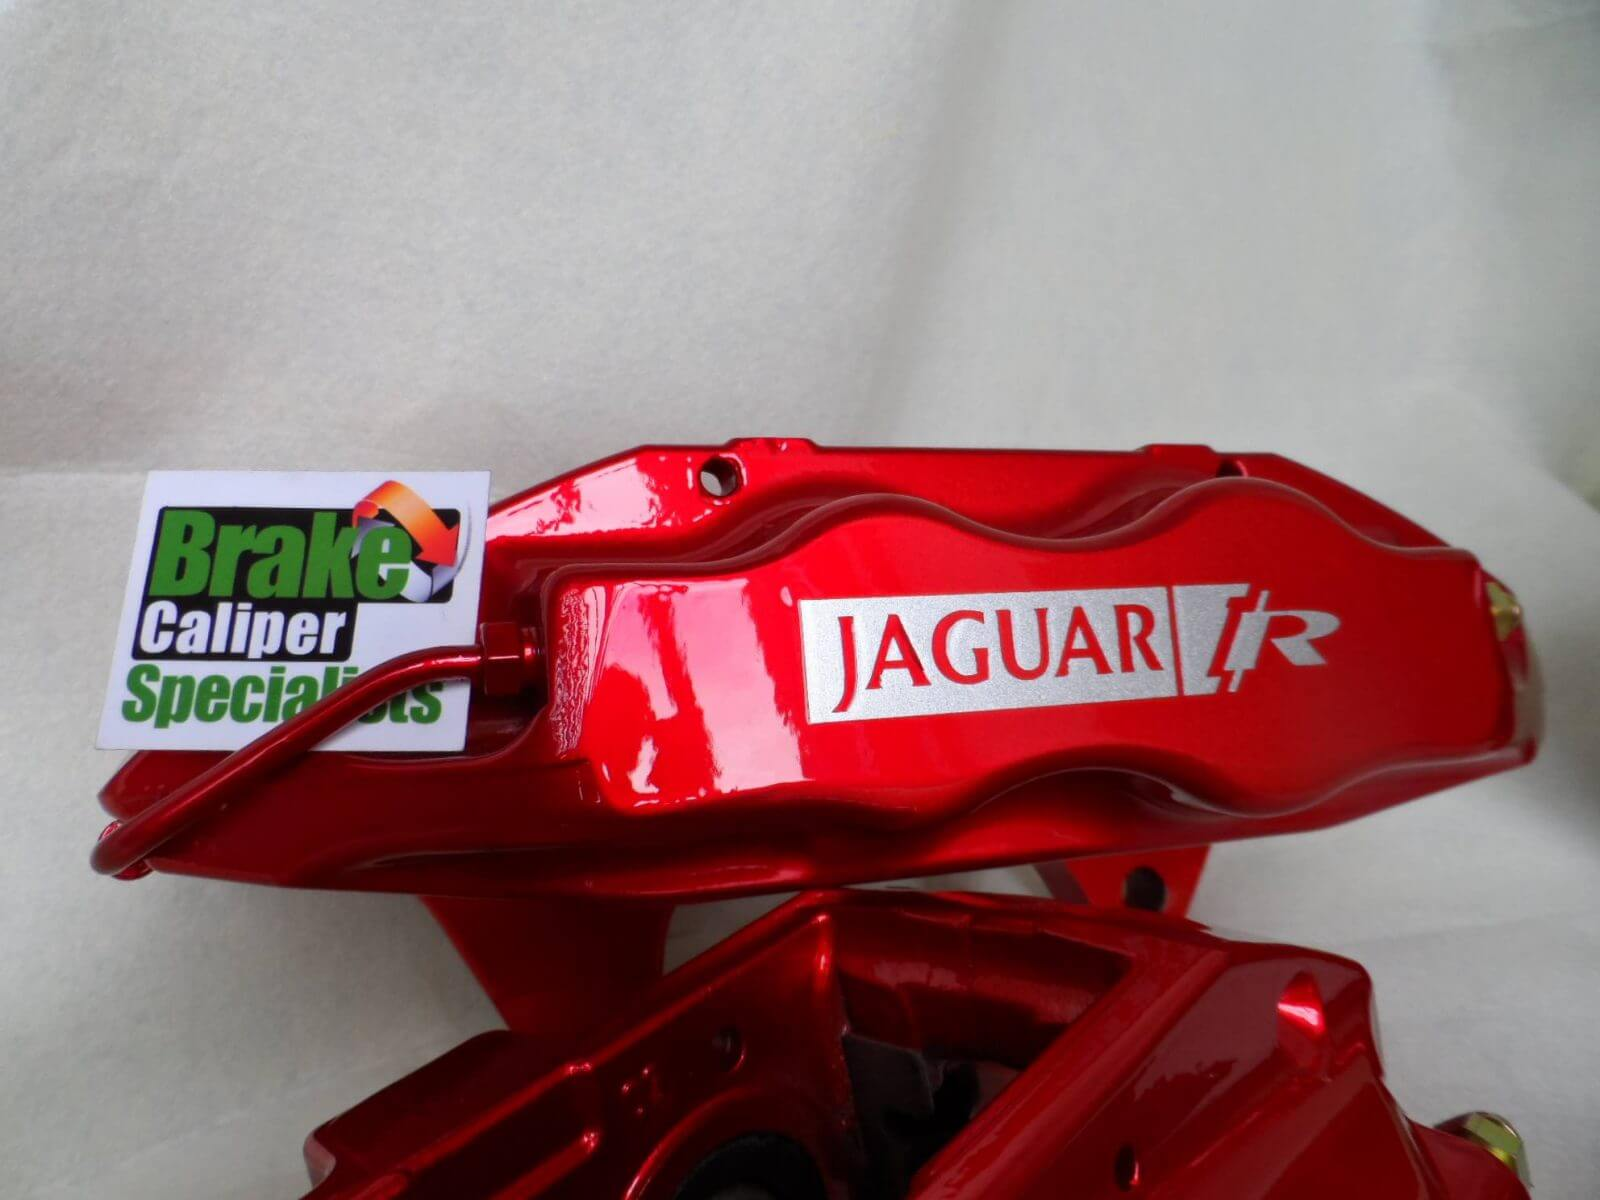 Jaguar XKR brembo calipers in red